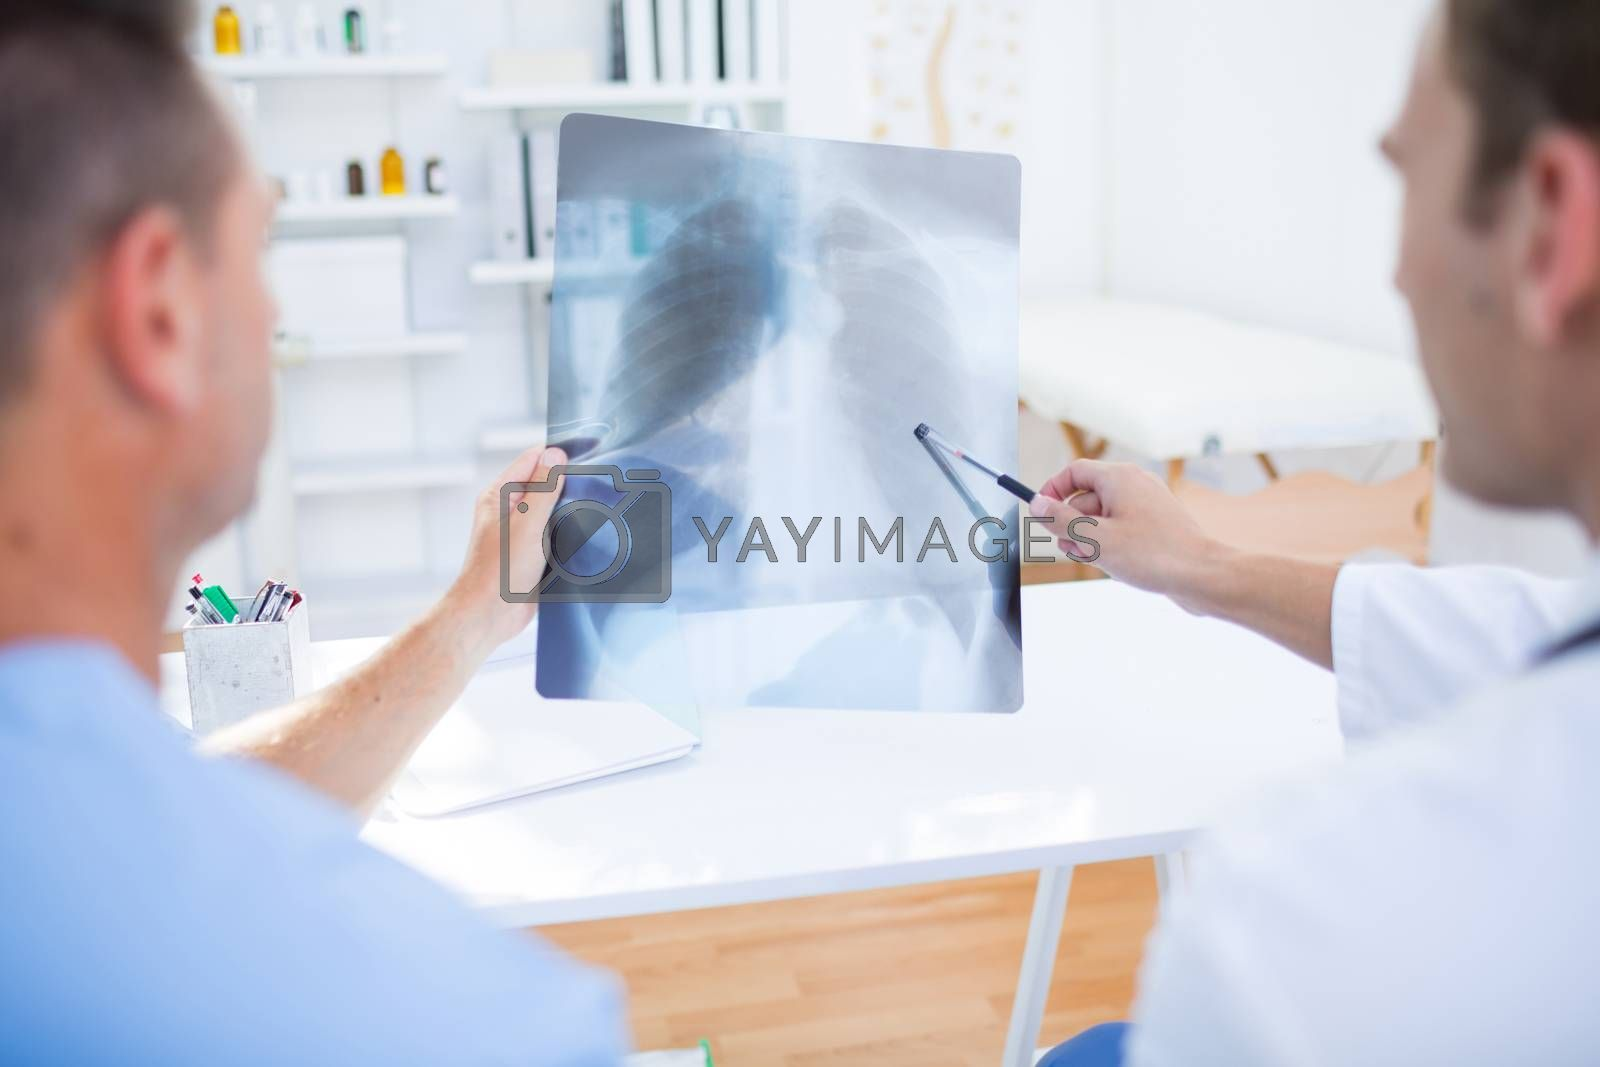 Royalty free image of Rear view of concentrated medical colleagues examining x-ray together by Wavebreakmedia